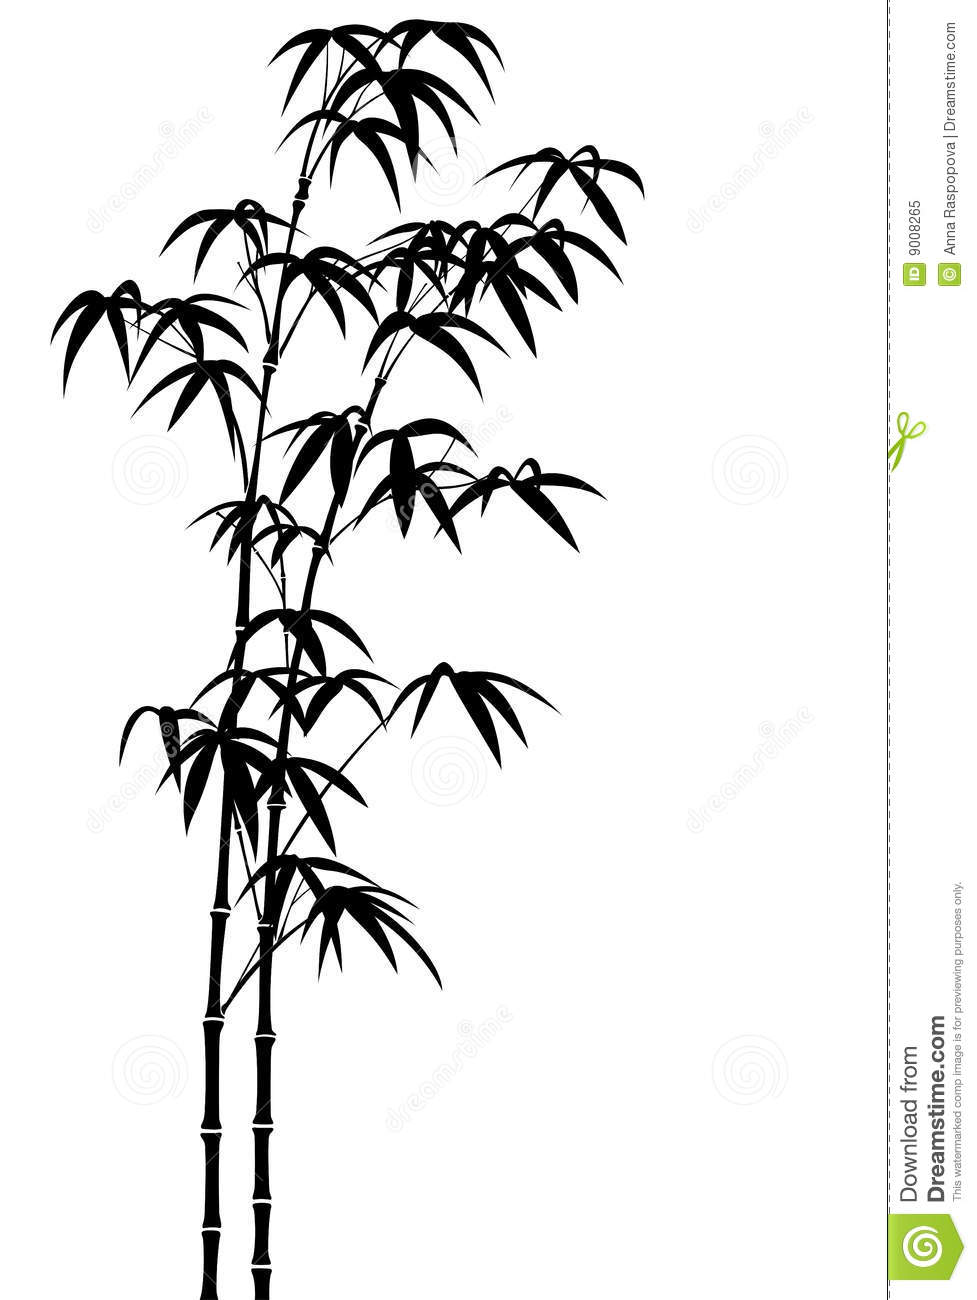 silhouette bamboo stock illustrations 7 399 silhouette bamboo stock illustrations vectors clipart dreamstime dreamstime com